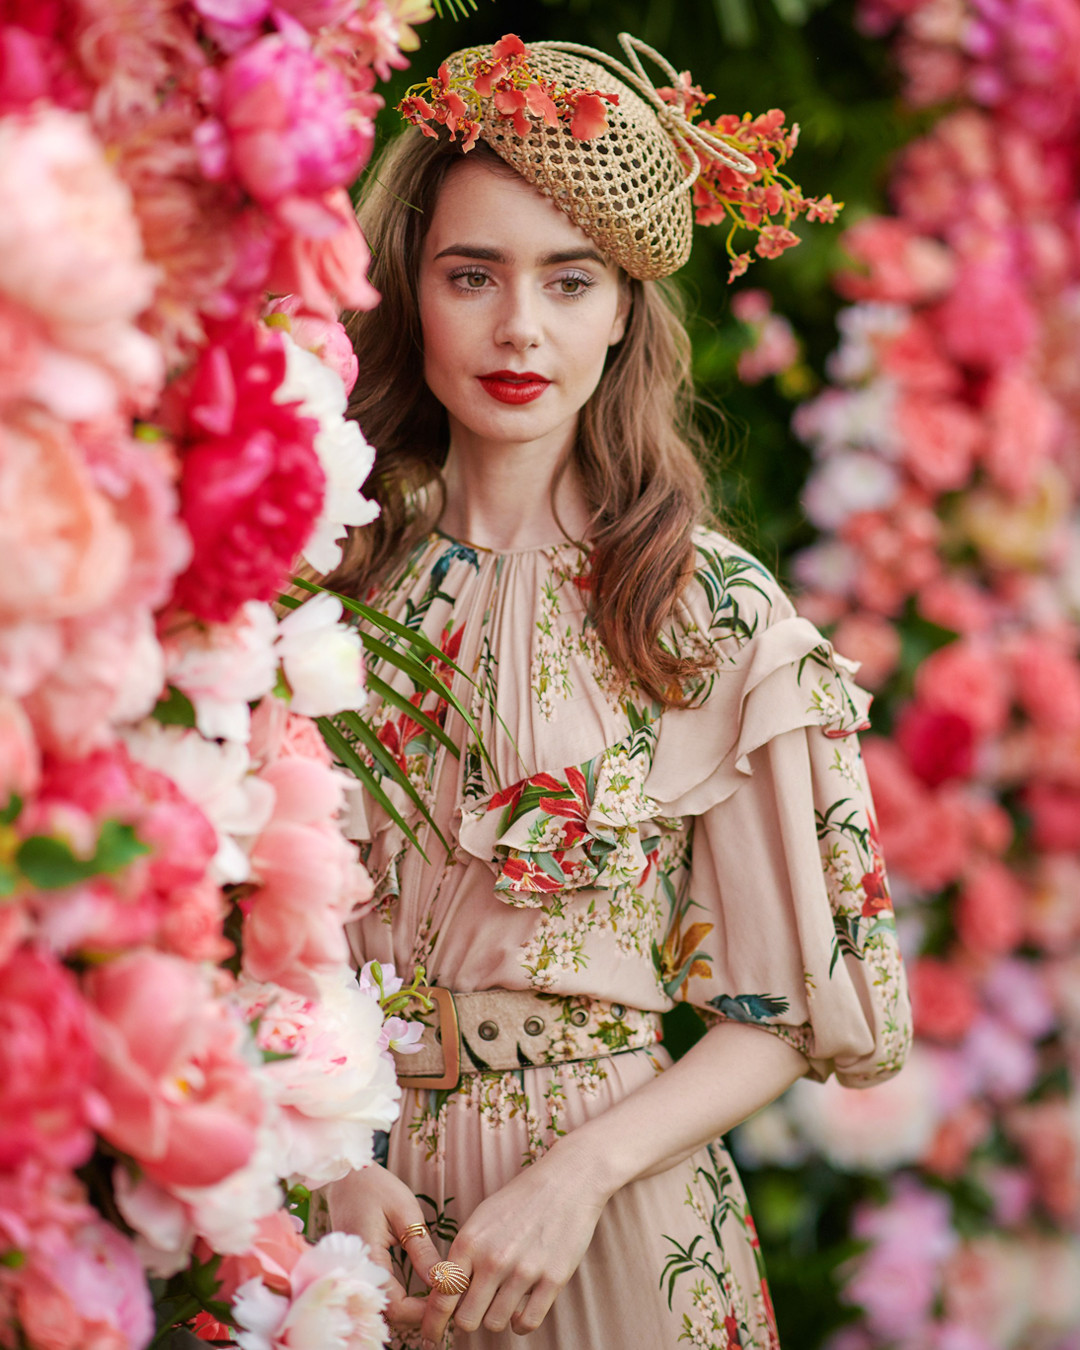 ESC: Best Dressed, Lily Collins